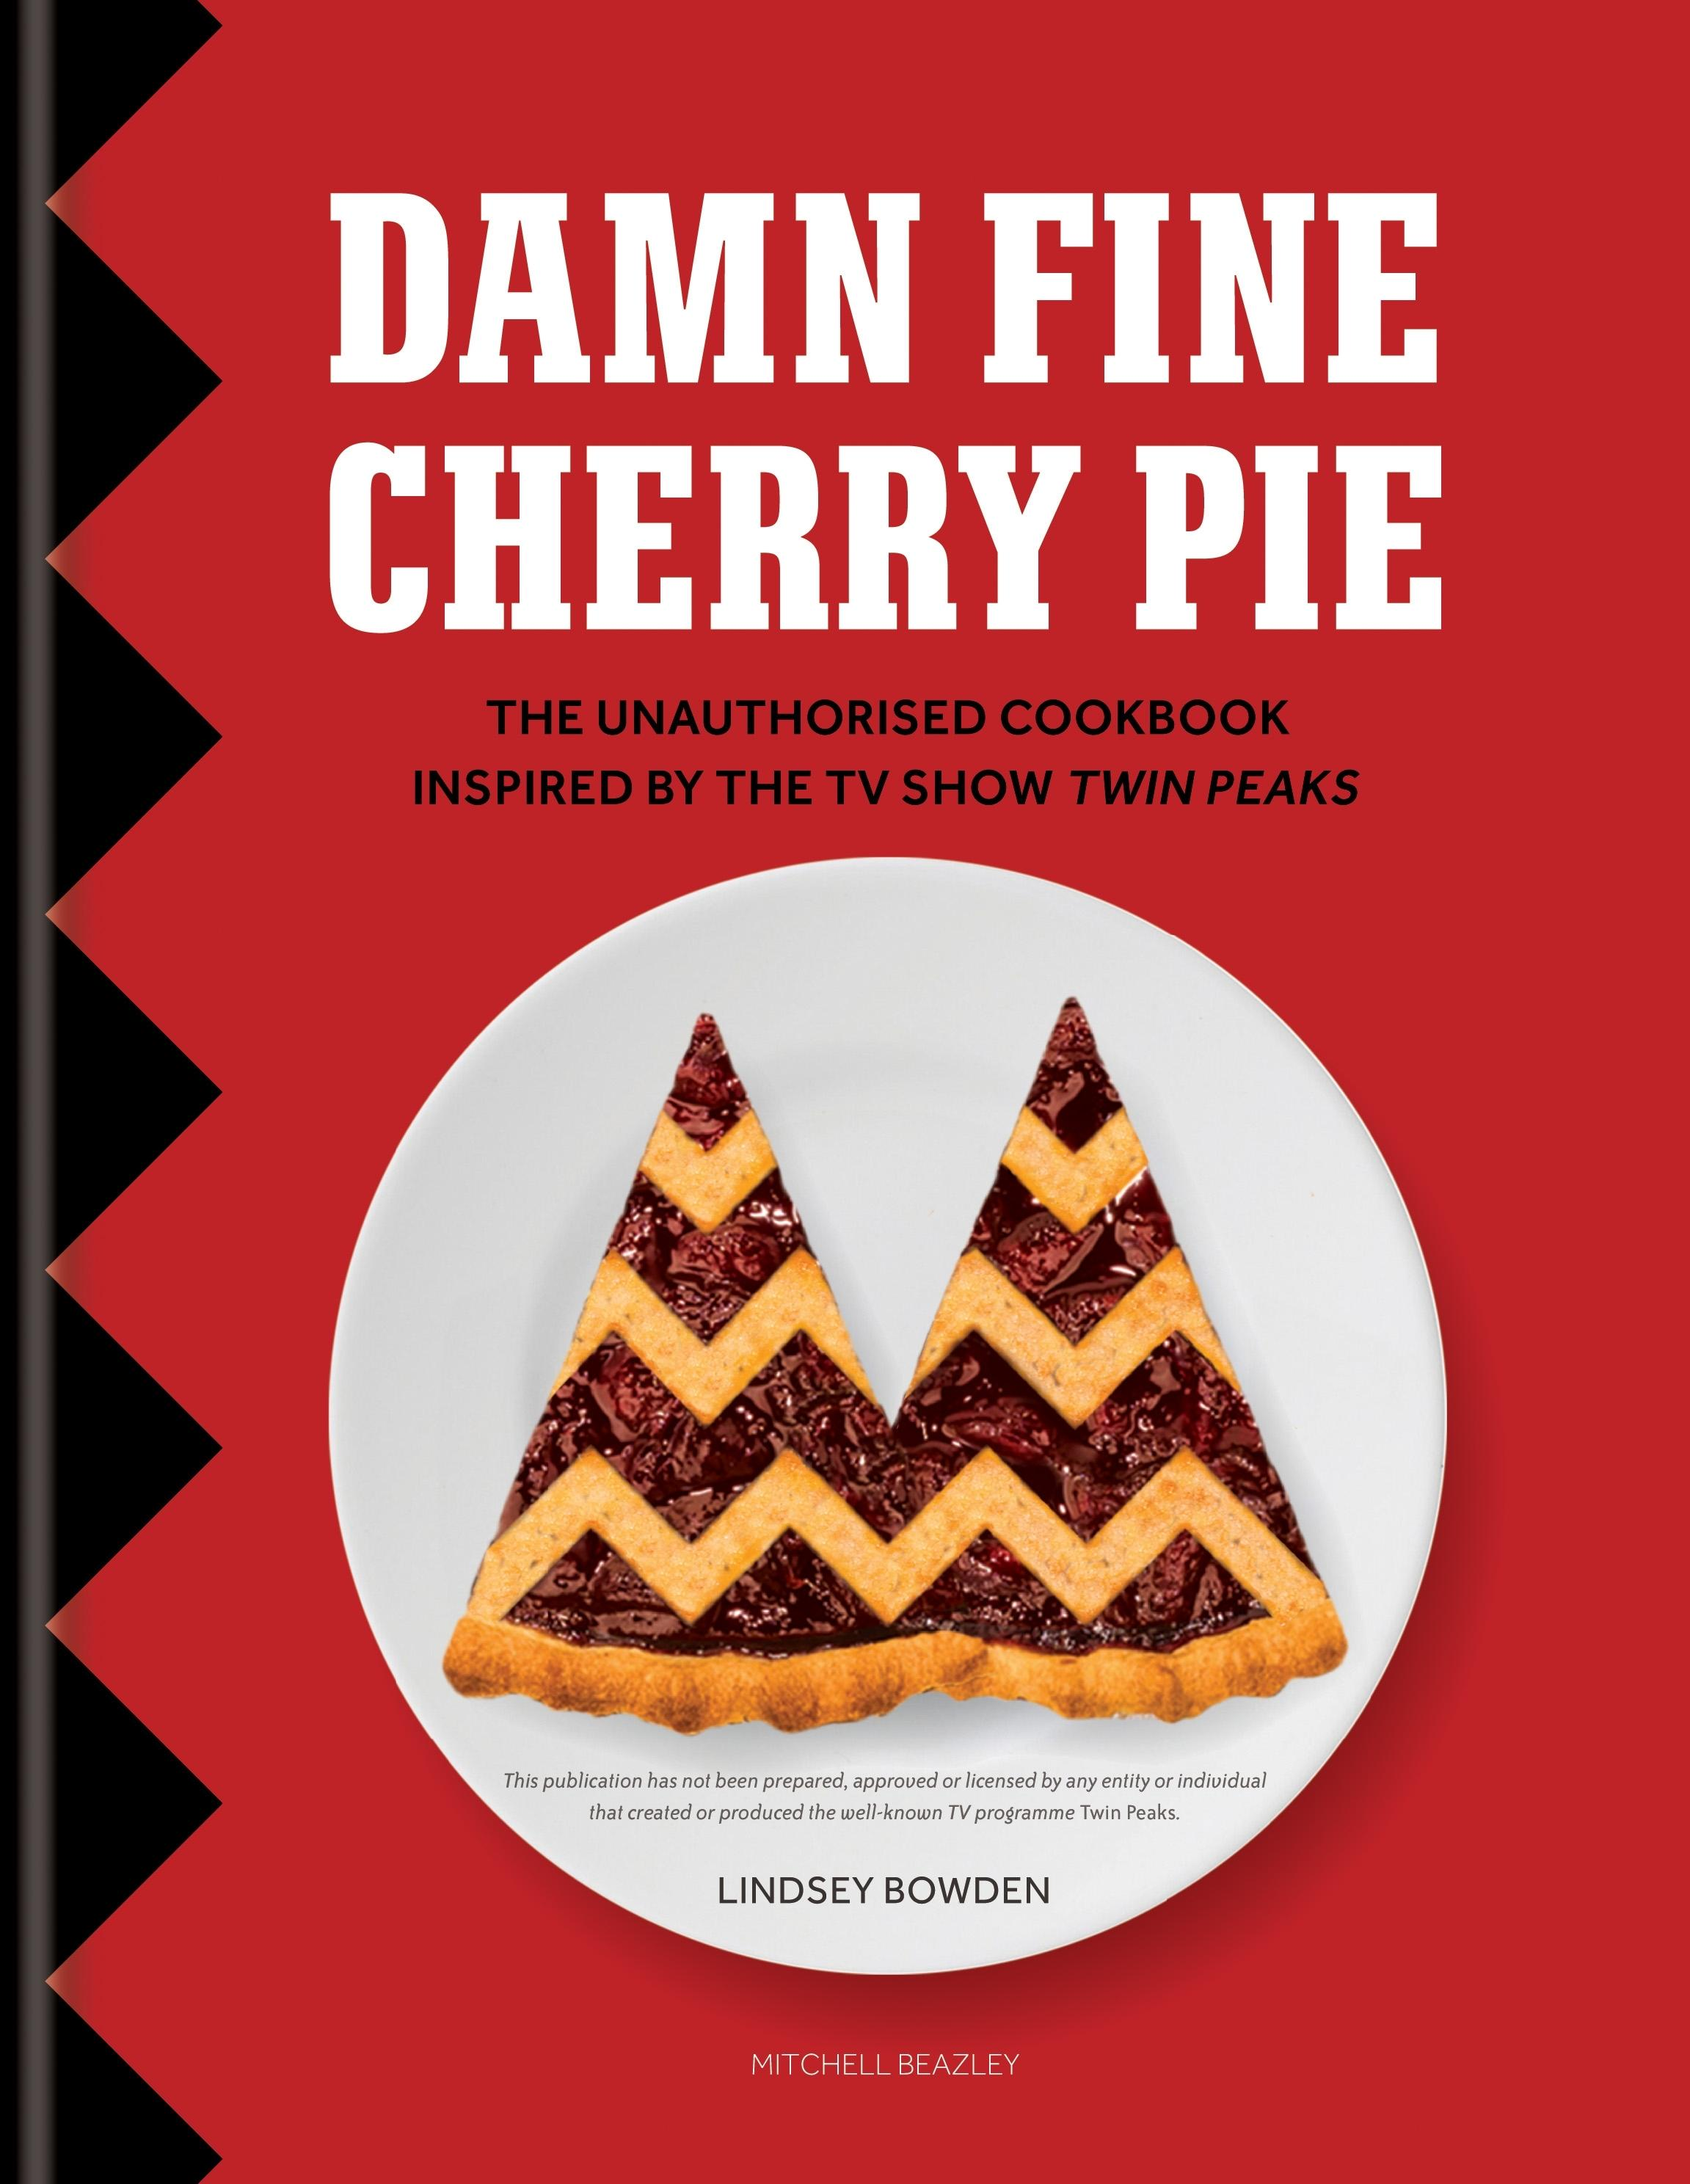 Damn Fine Cherry Pie: The Unauthorised Cookbook Inspired by the TV Show Twin Peaks